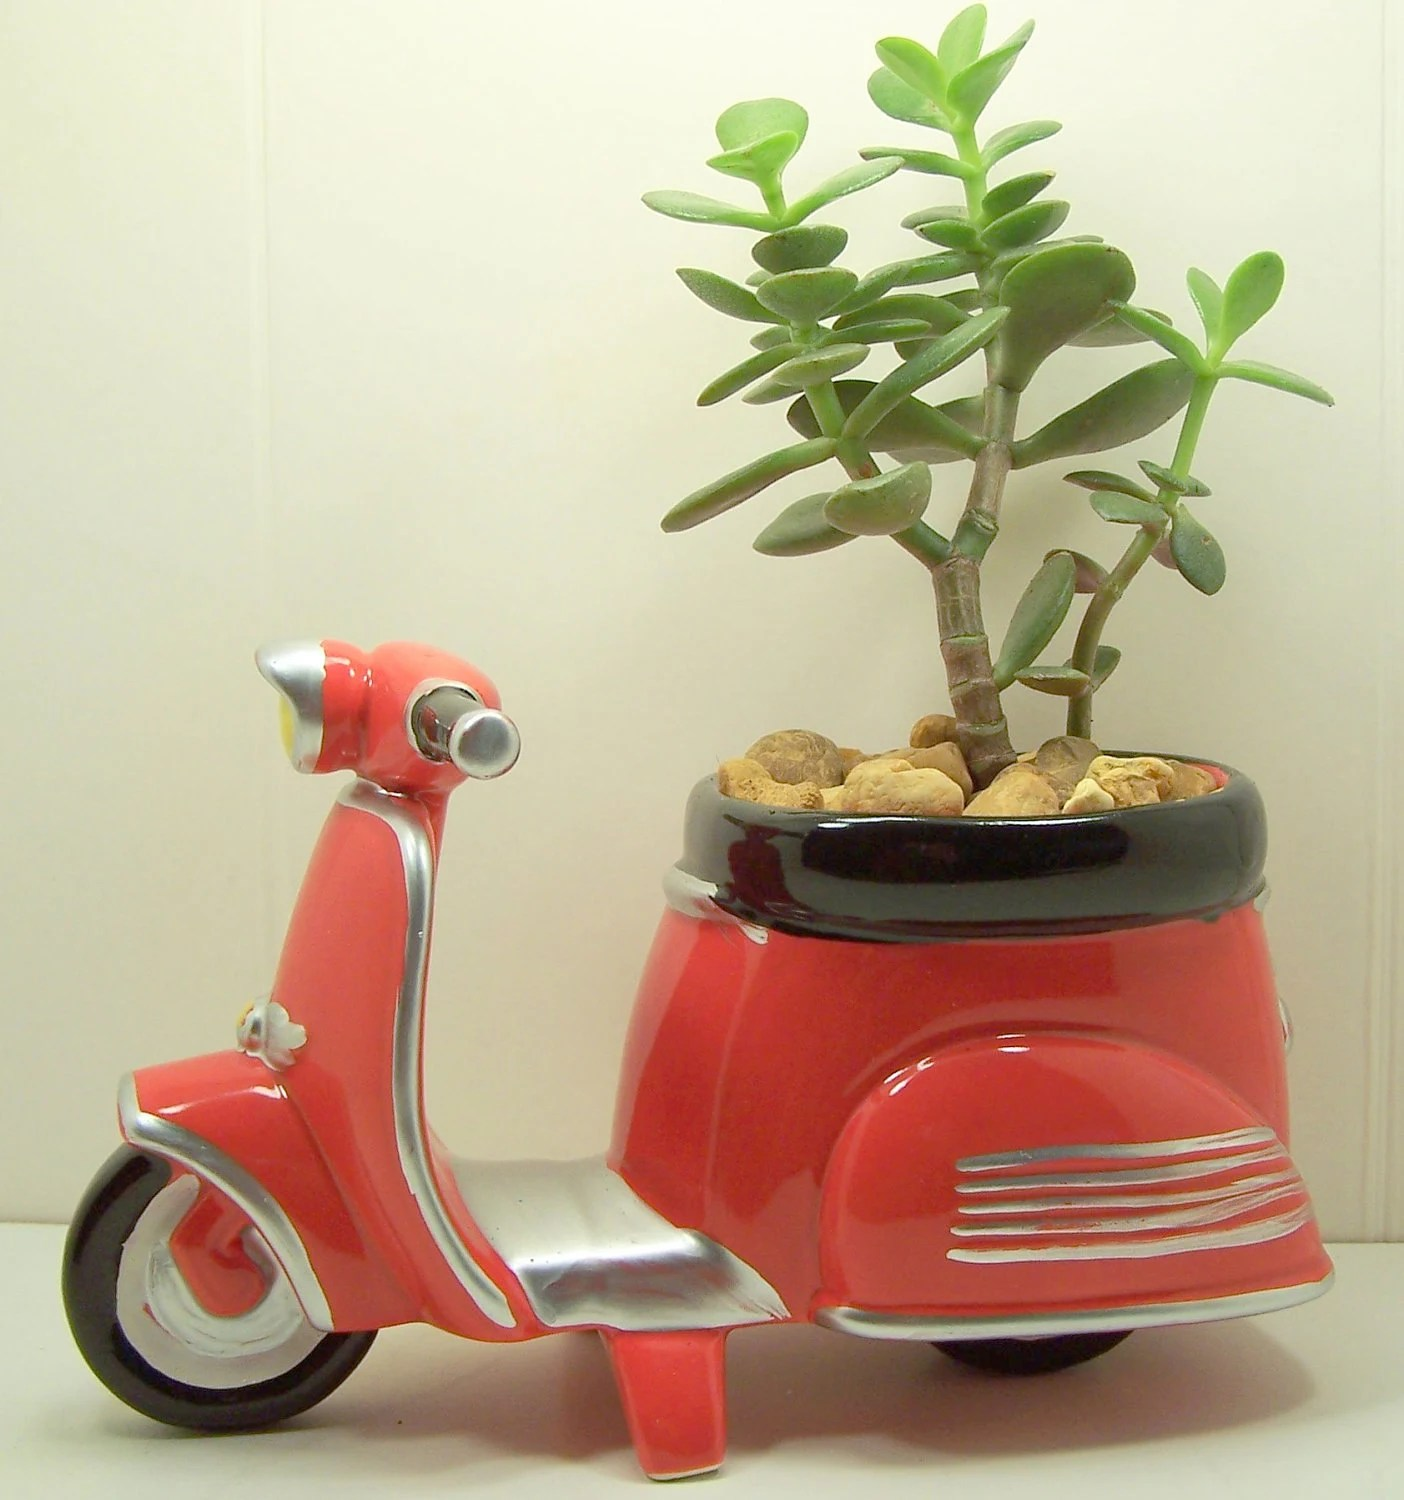 Succulent Jade planter Red Scooter diy kit